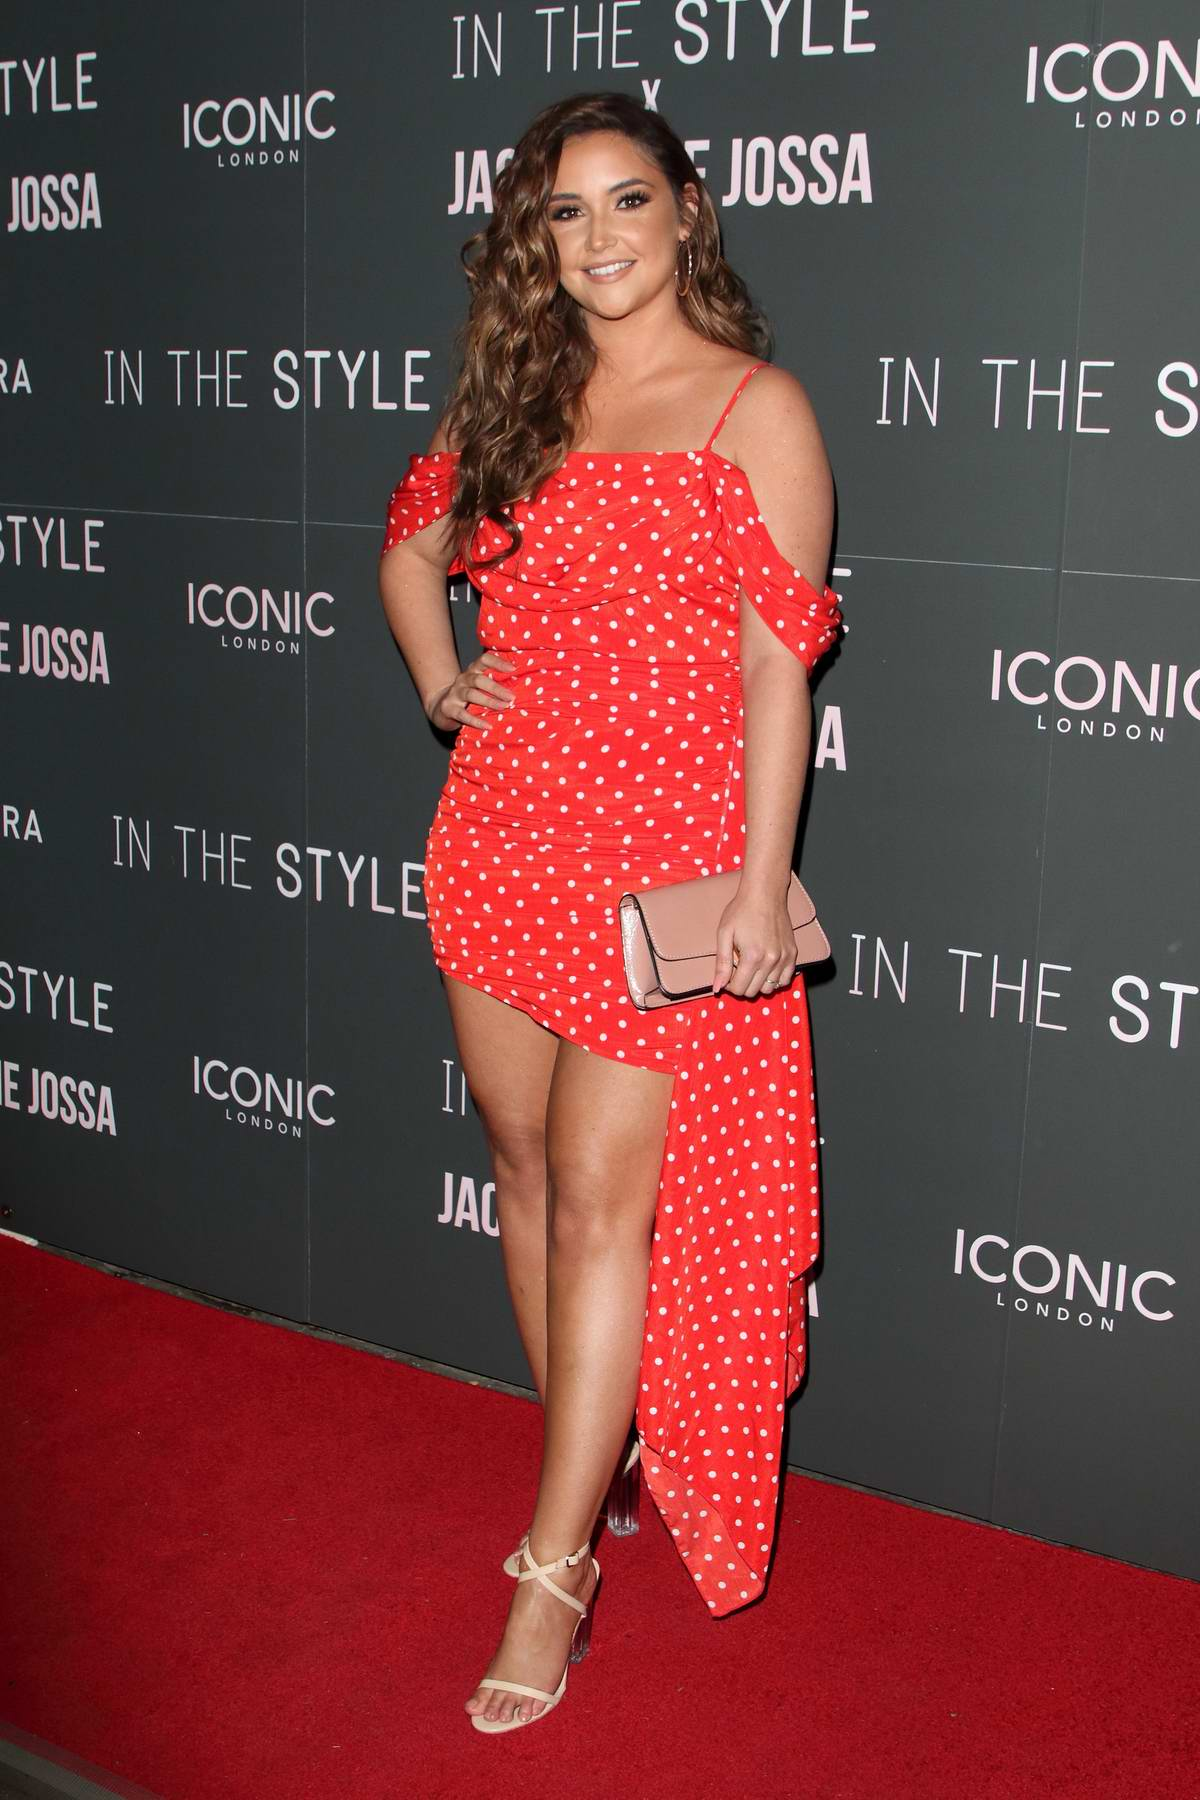 Jacqueline Jossa attends In The Style x Jacqueline Jossa Launch Party in London, UK